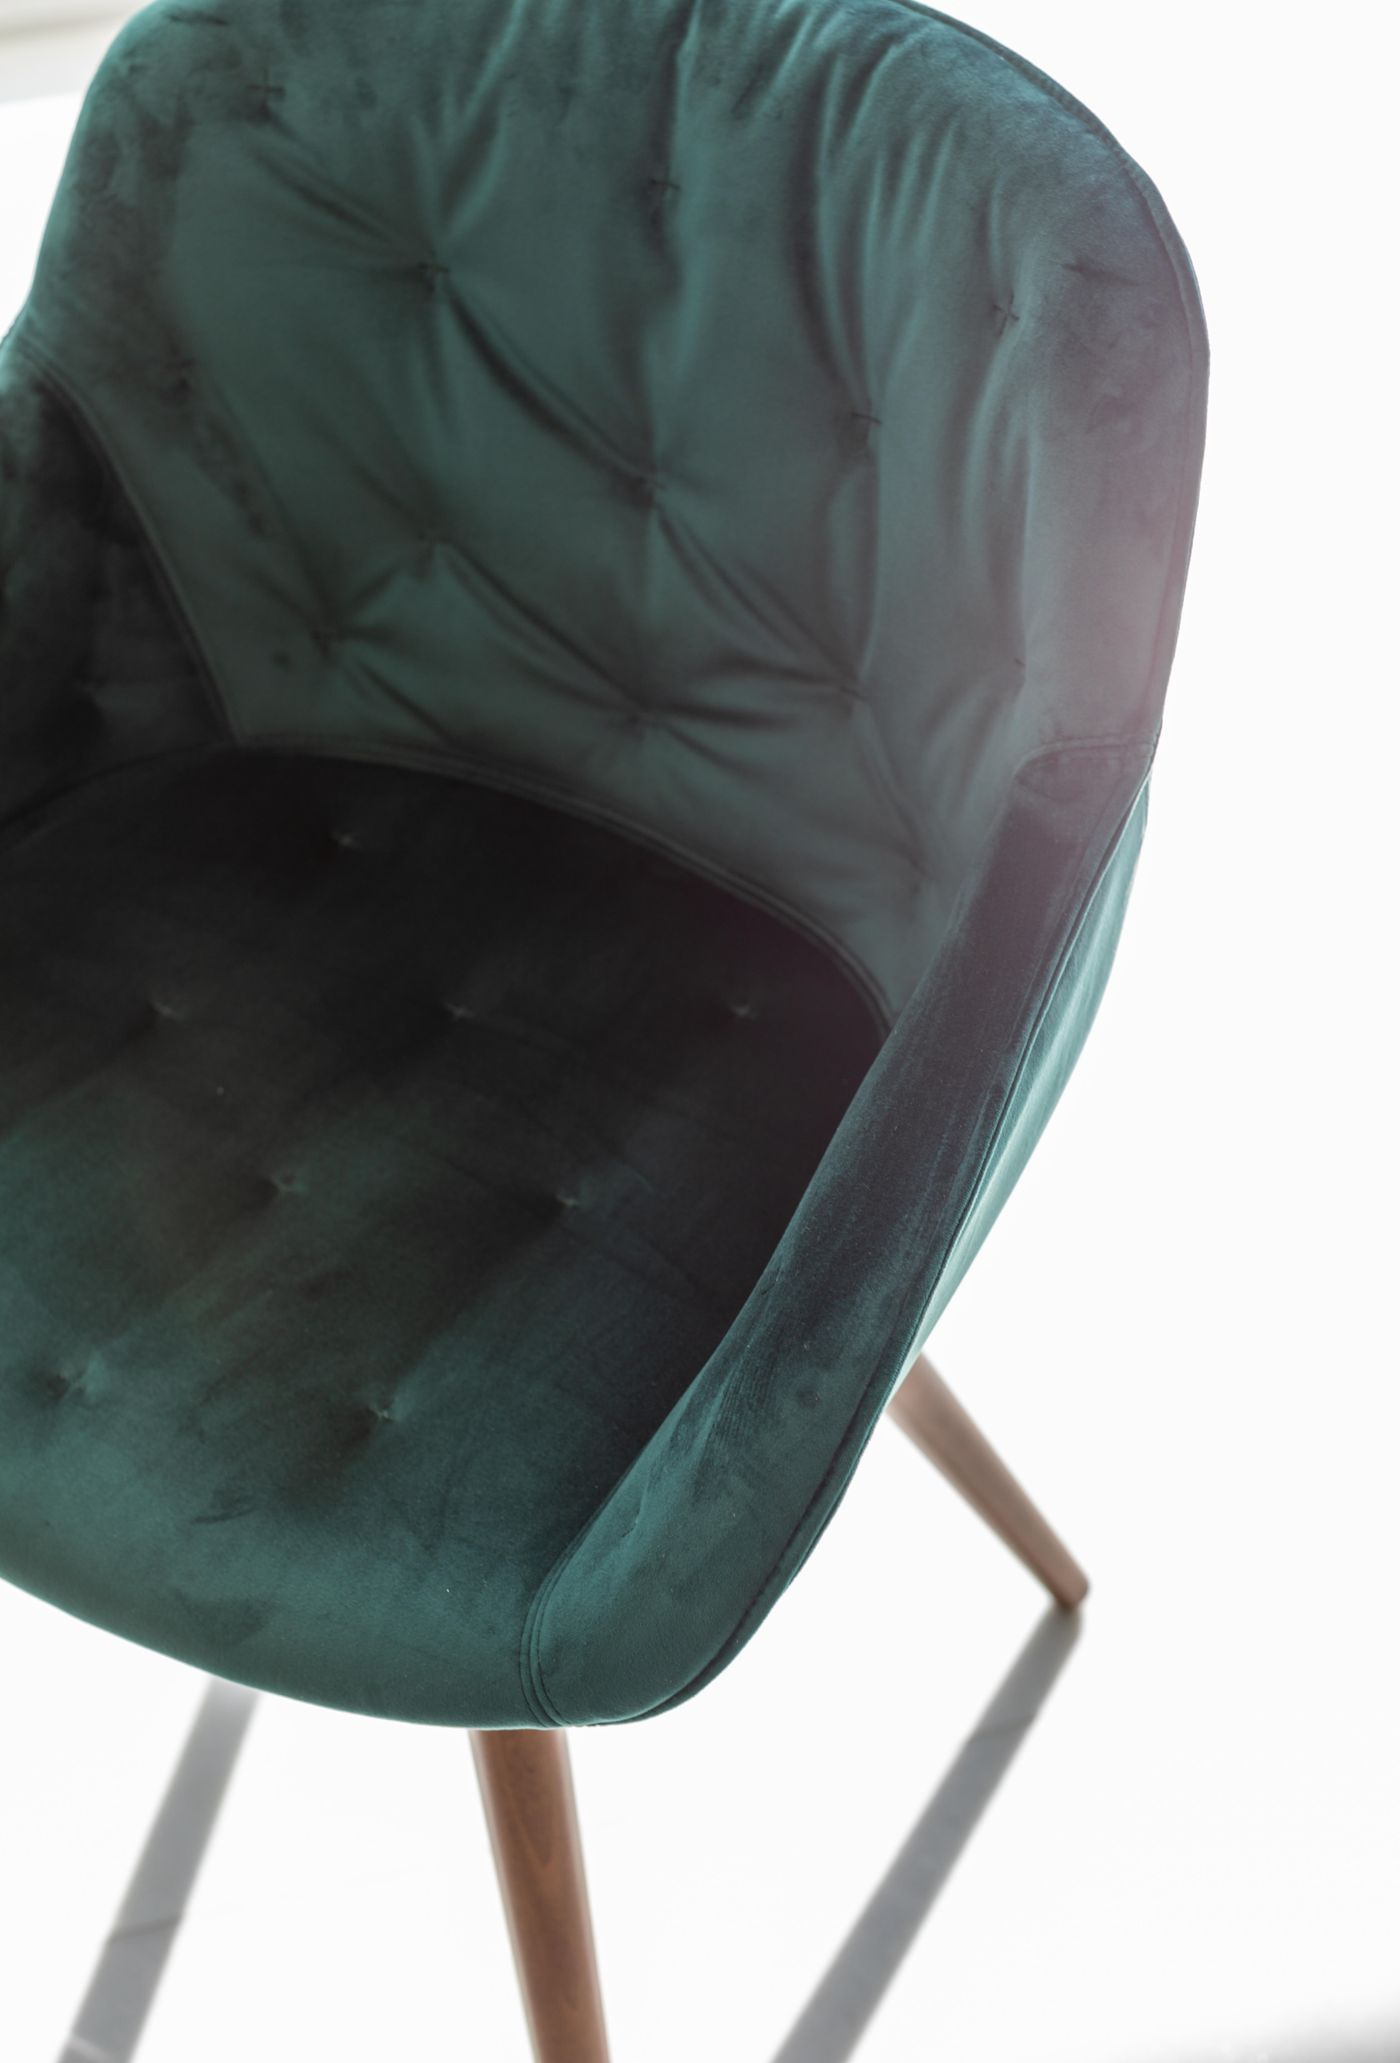 Green Soft Chair Sunny Isles